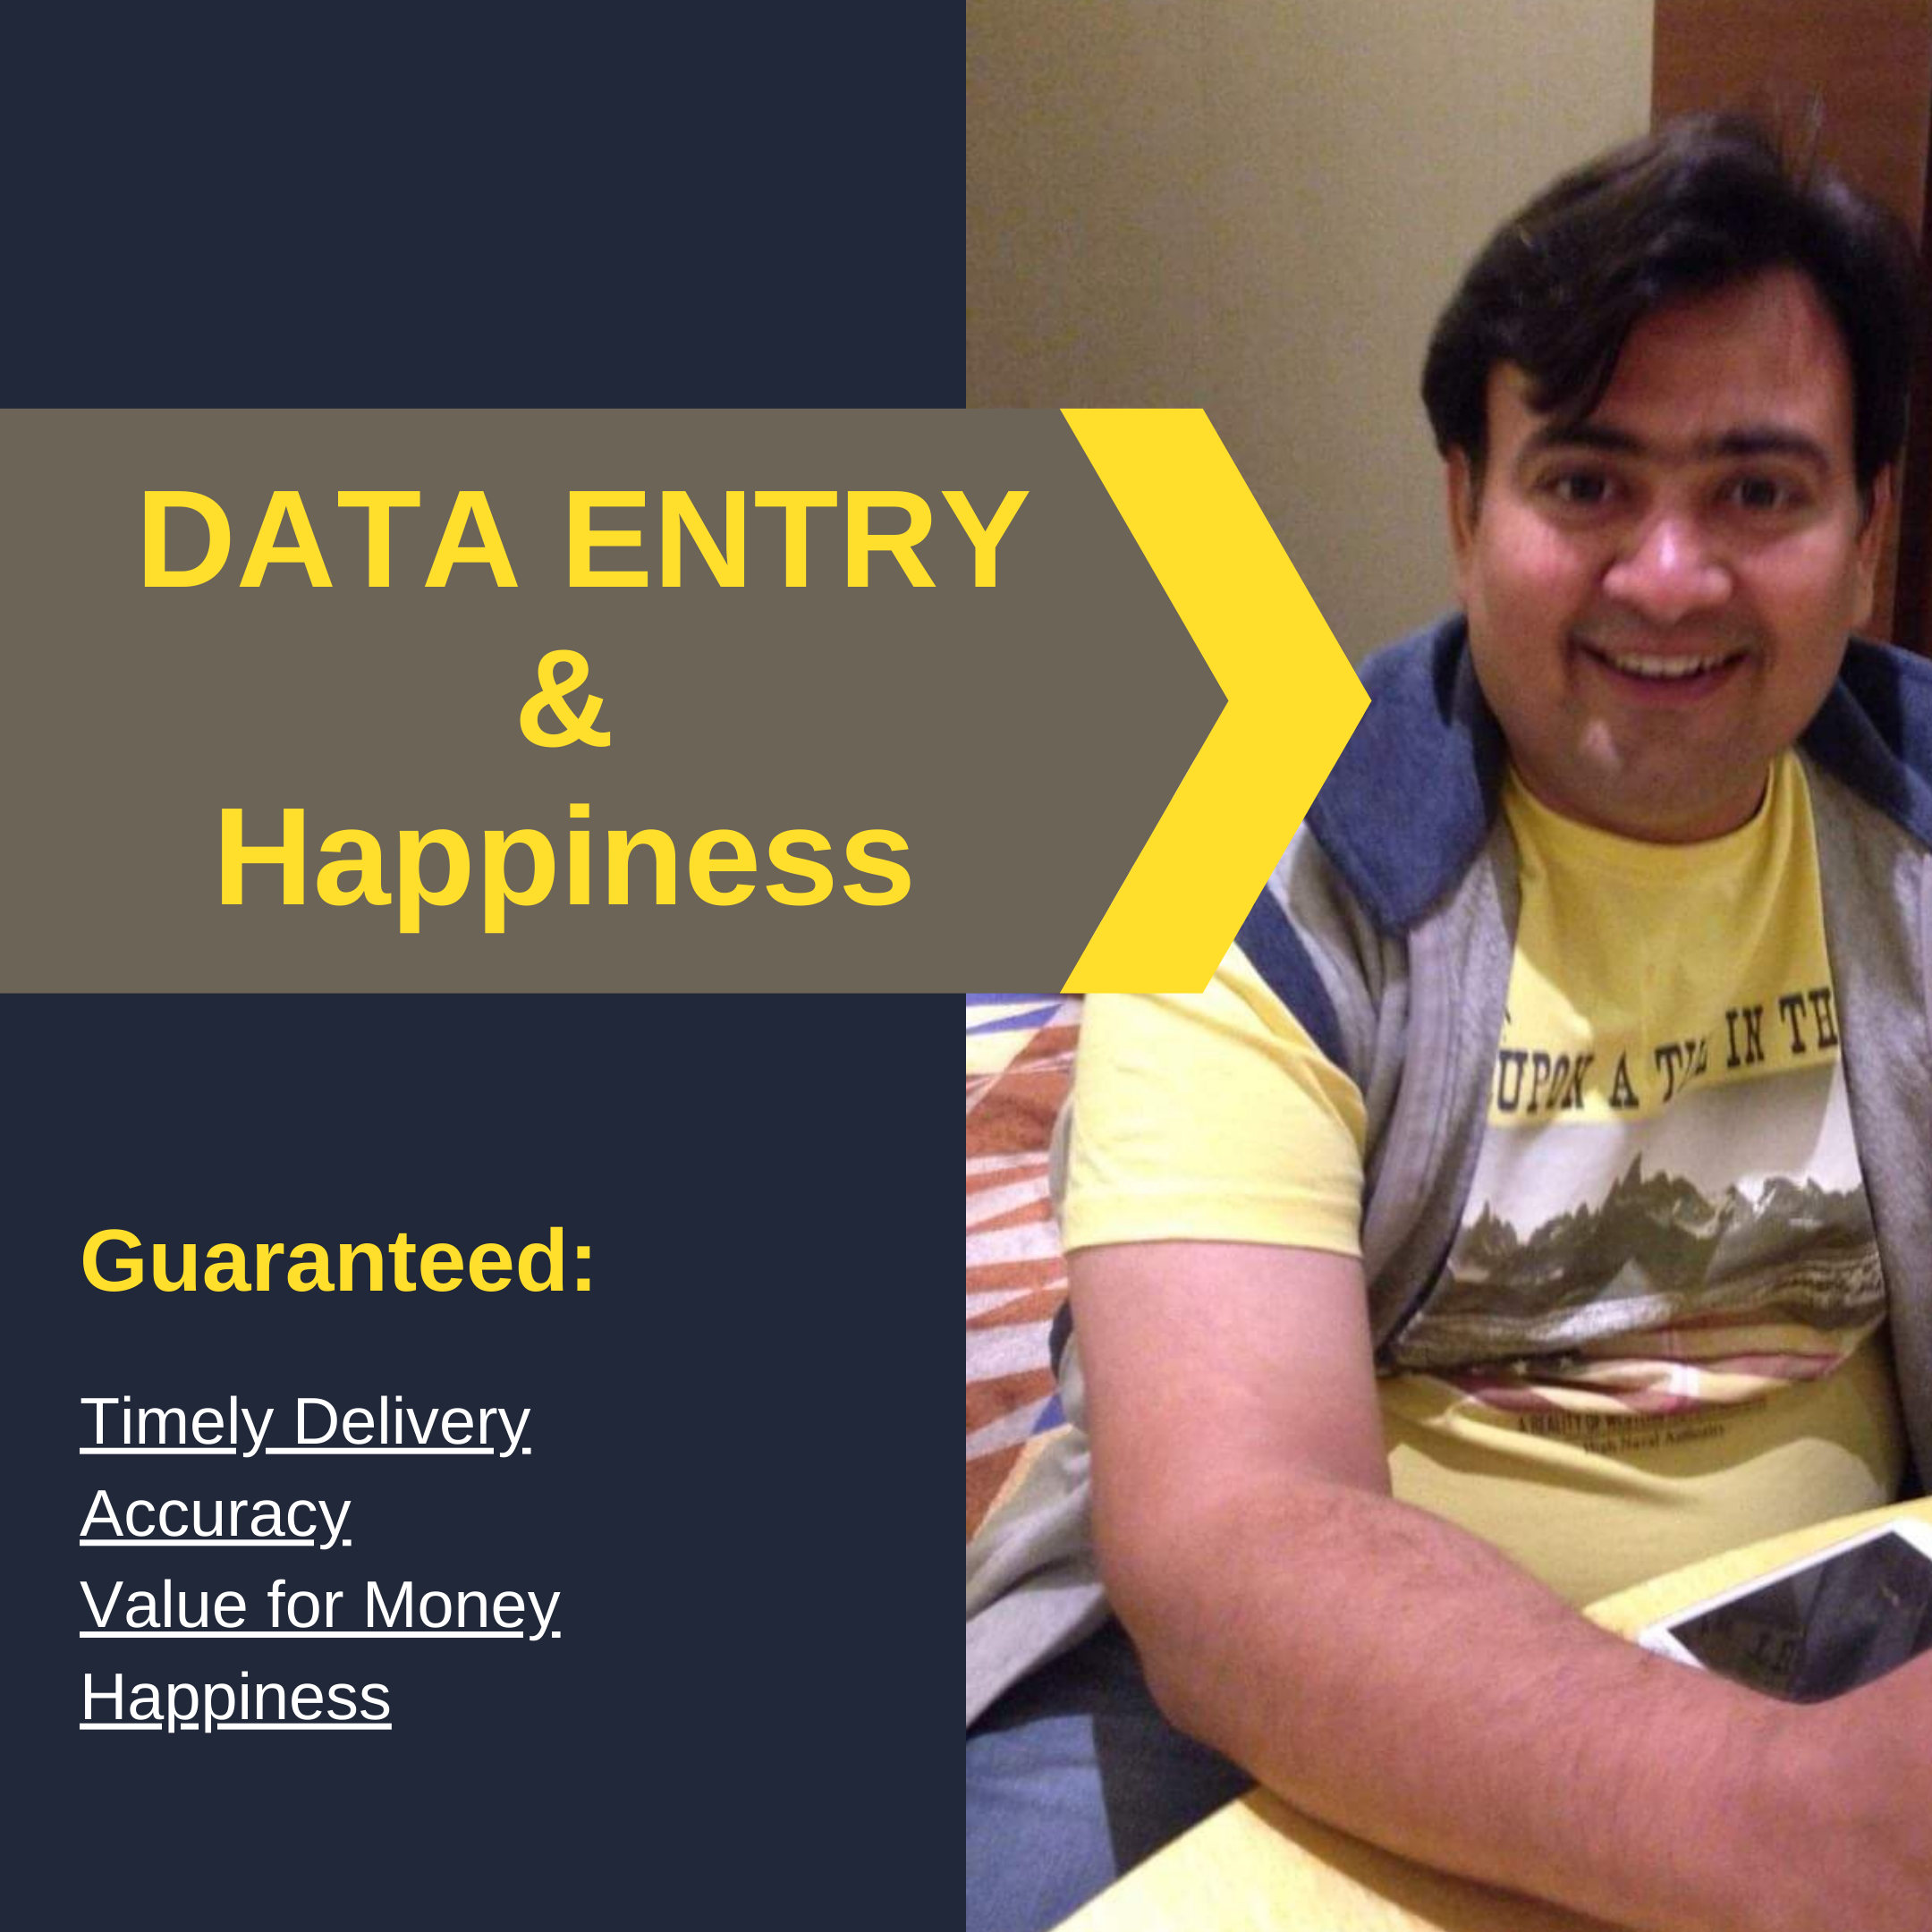 Spreading happiness through Data Entry